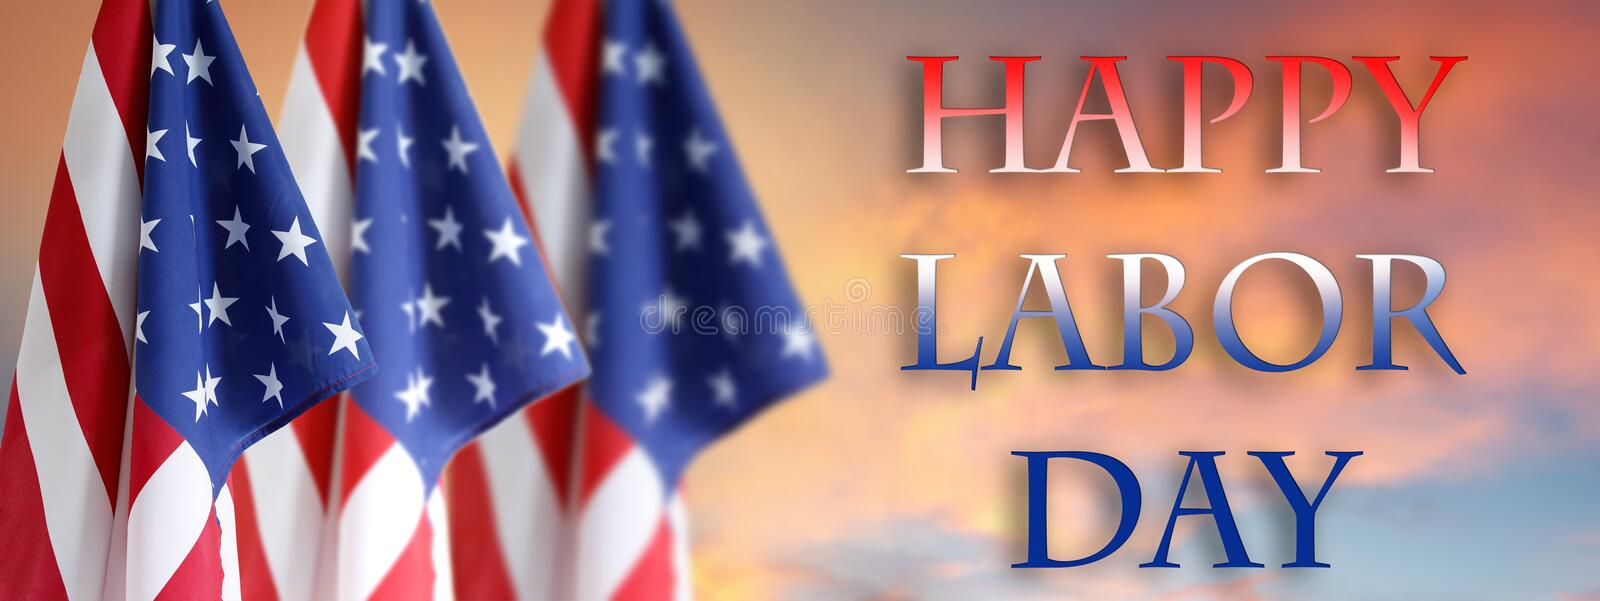 Labor day American flags royalty free stock image